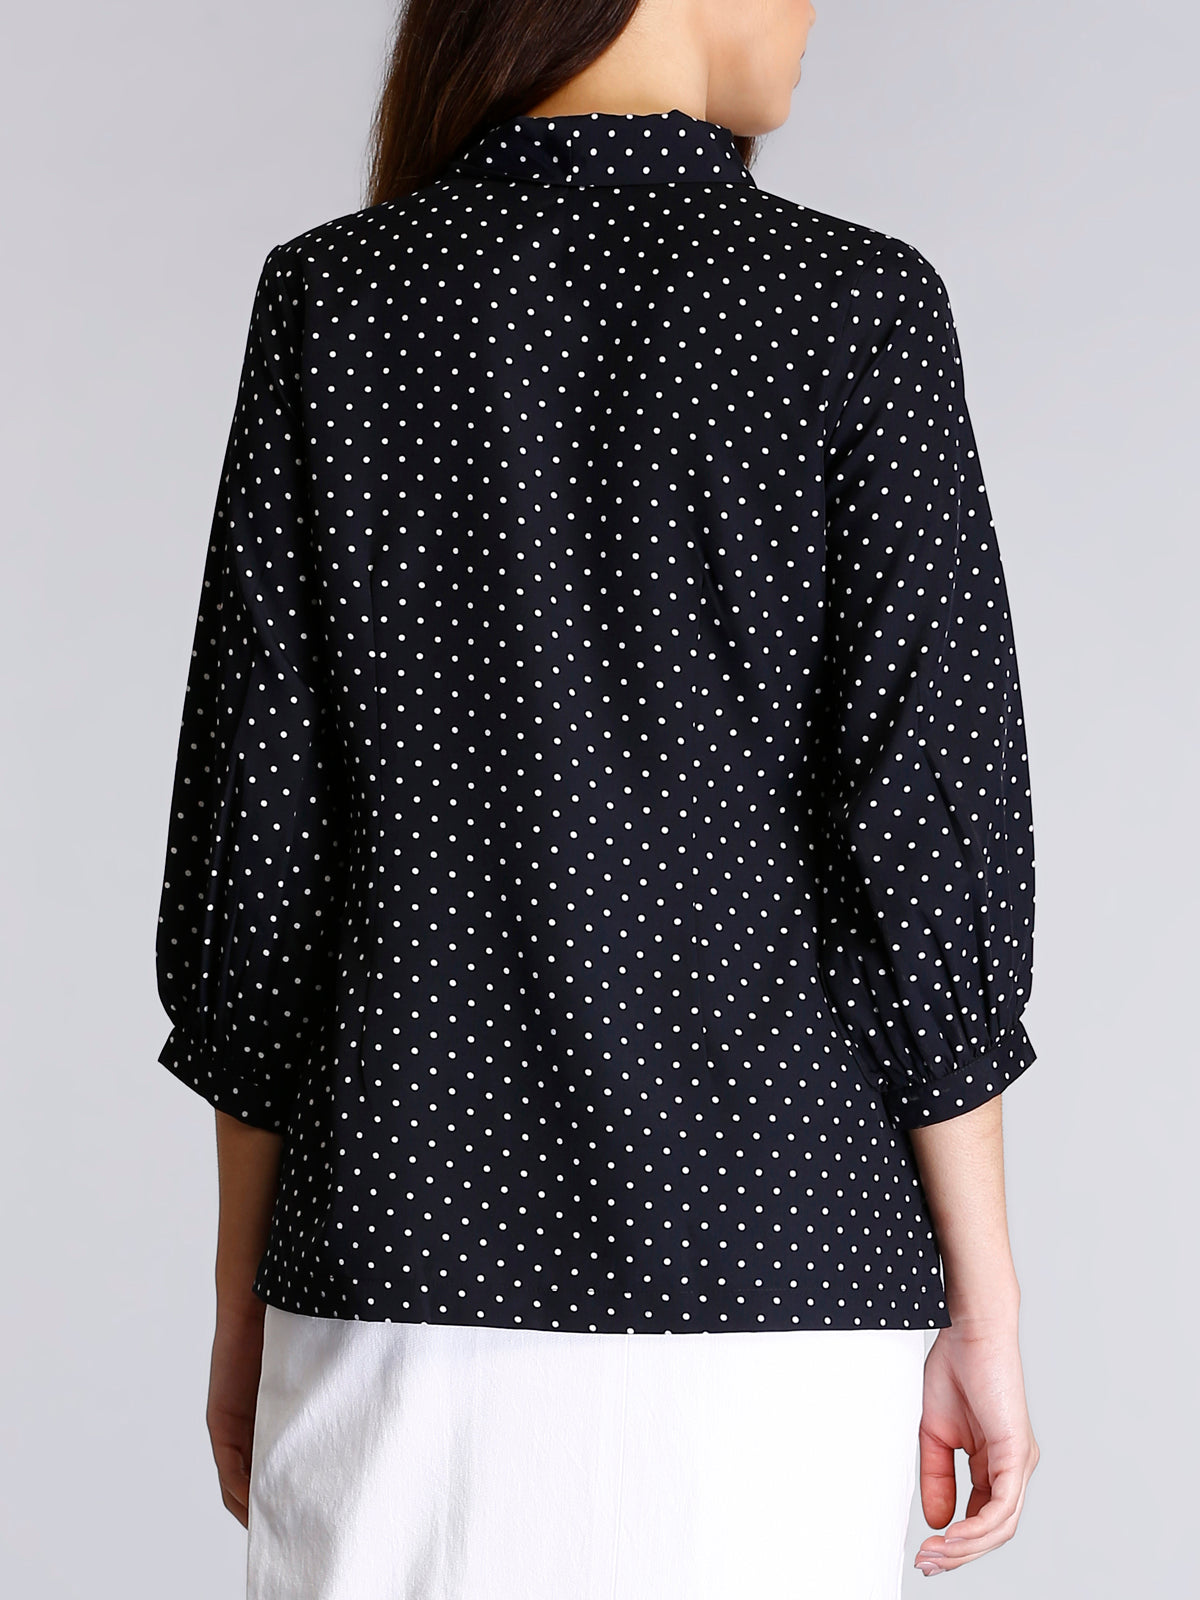 Pussy Bow Neck Polka Top - Black and White